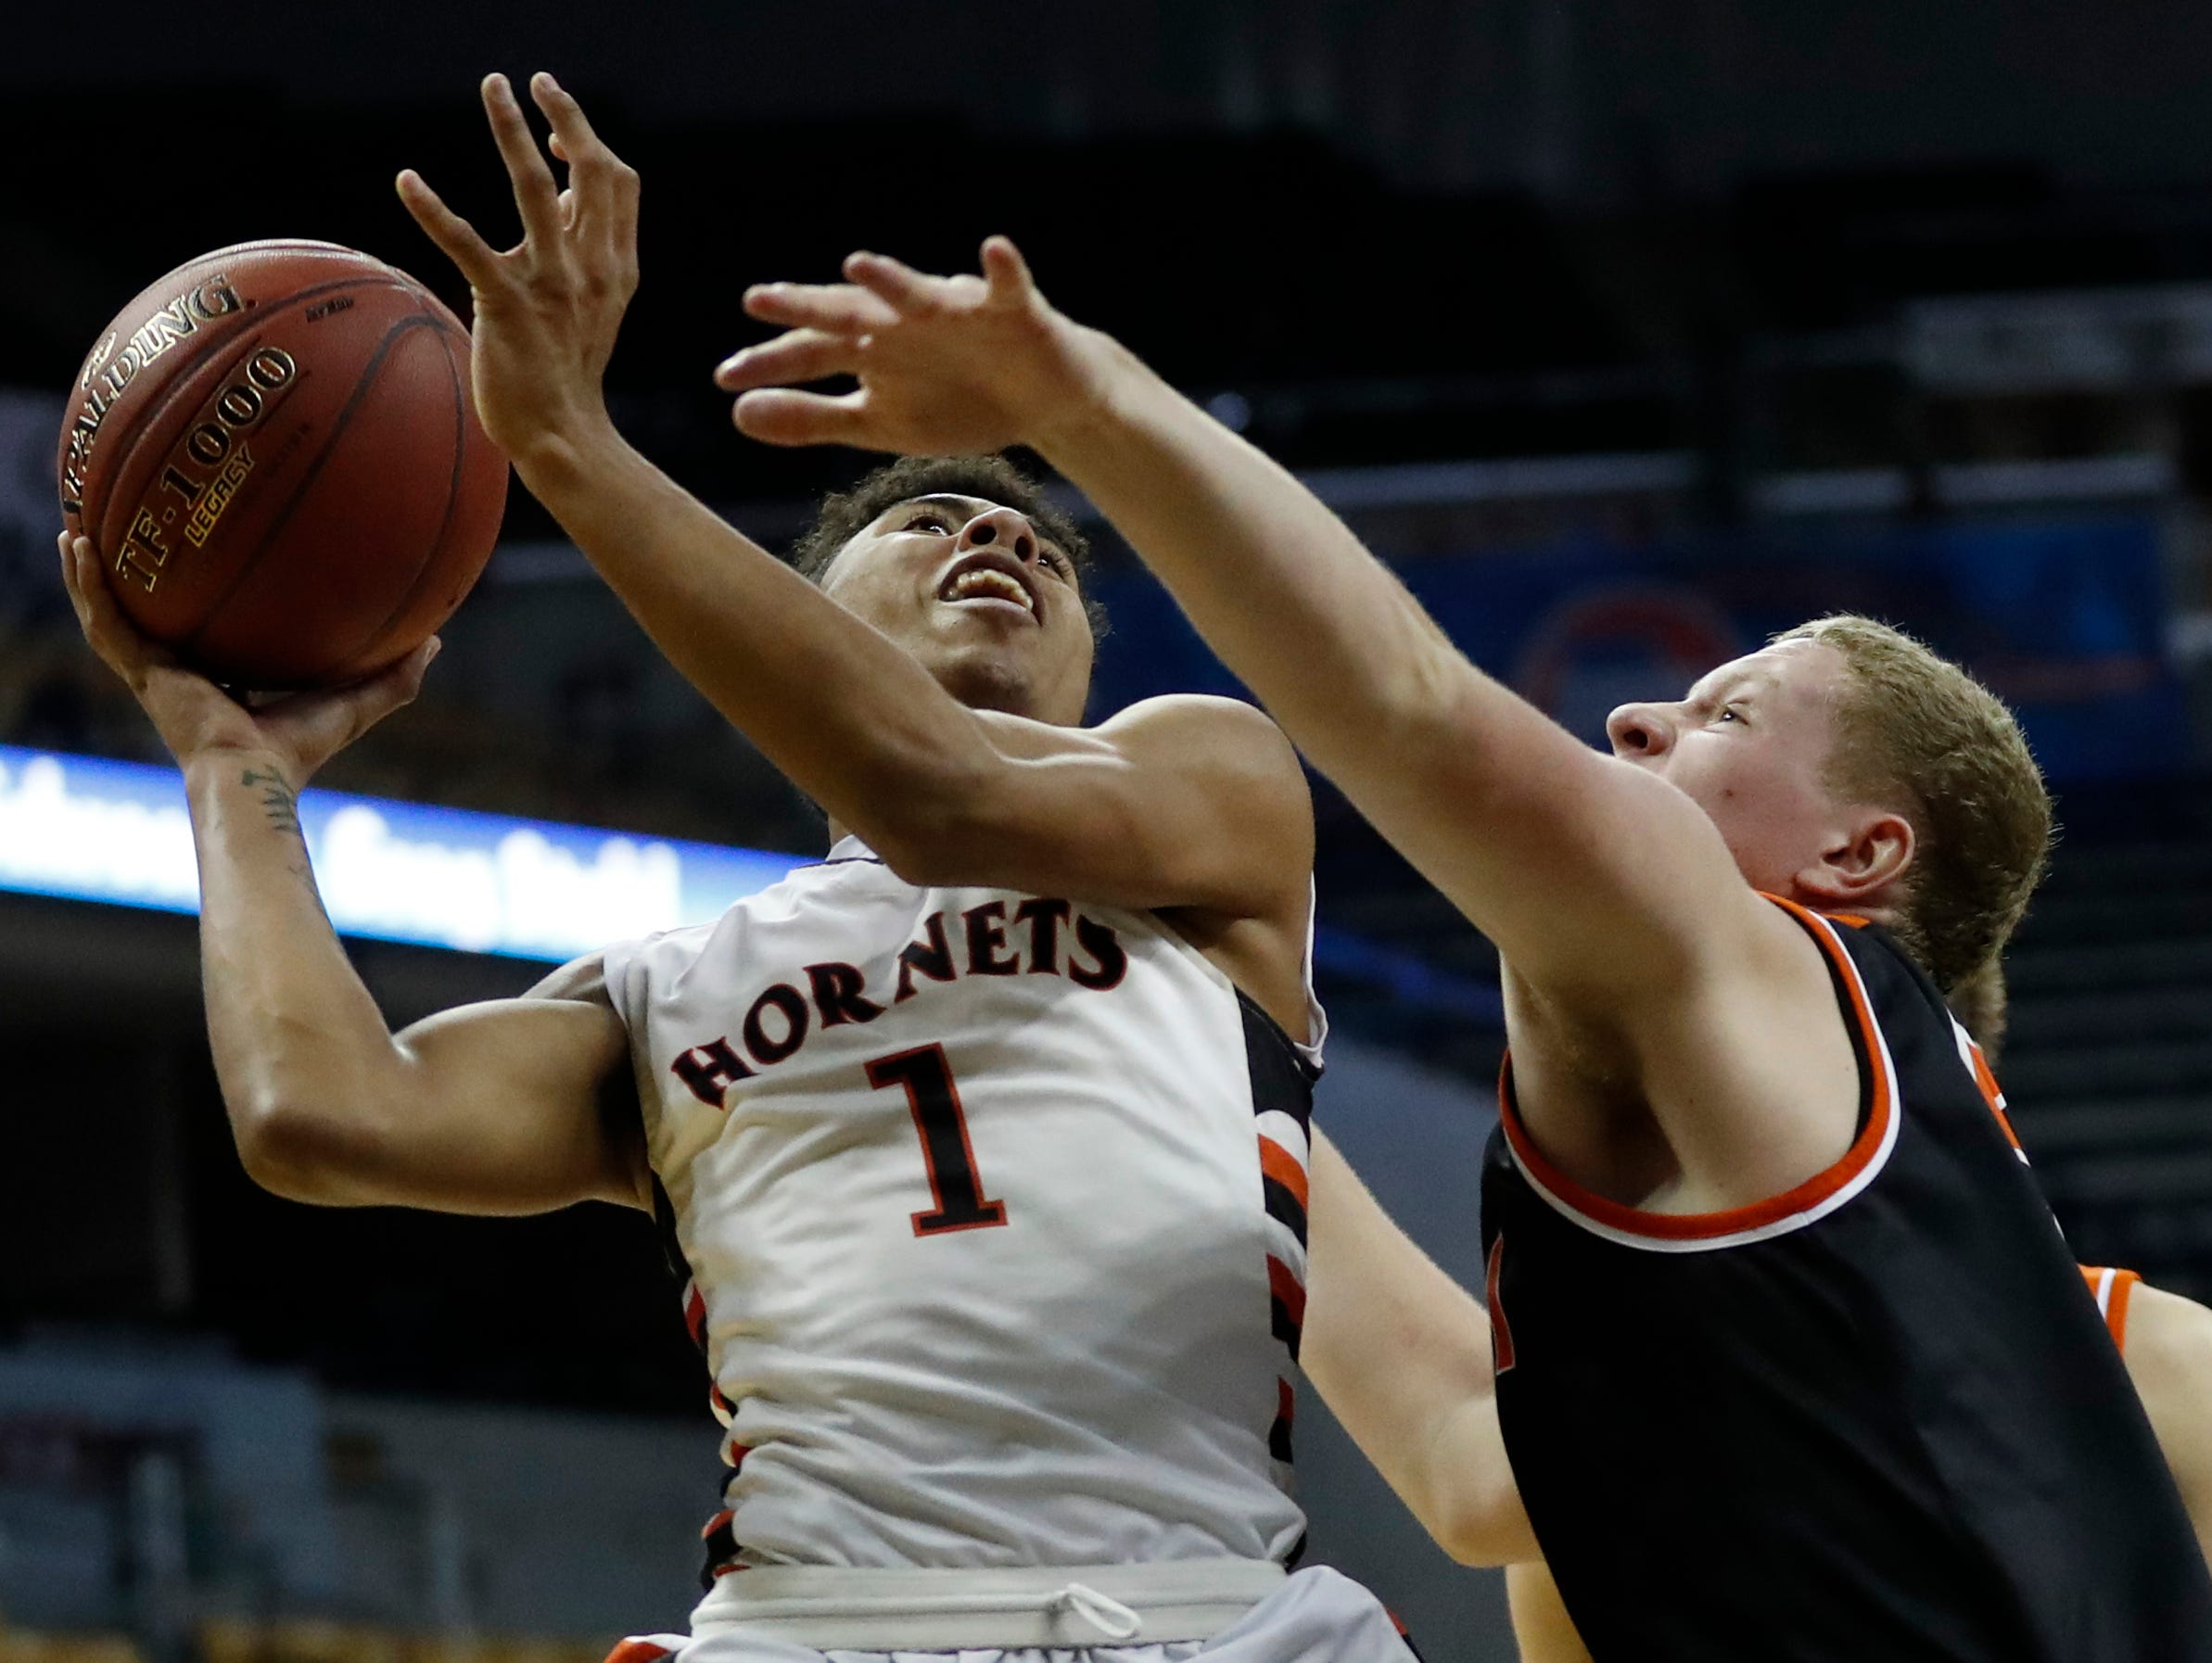 Advance's Armani Vermillion, left, shoots over Walnut Grove's Cole Melton during the second half of the Missouri Class 1 boys high school championship basketball game Saturday, March 11, 2017, in Columbia, Mo. Walnut Grove won 65-62. (AP Photo/Jeff Roberson)